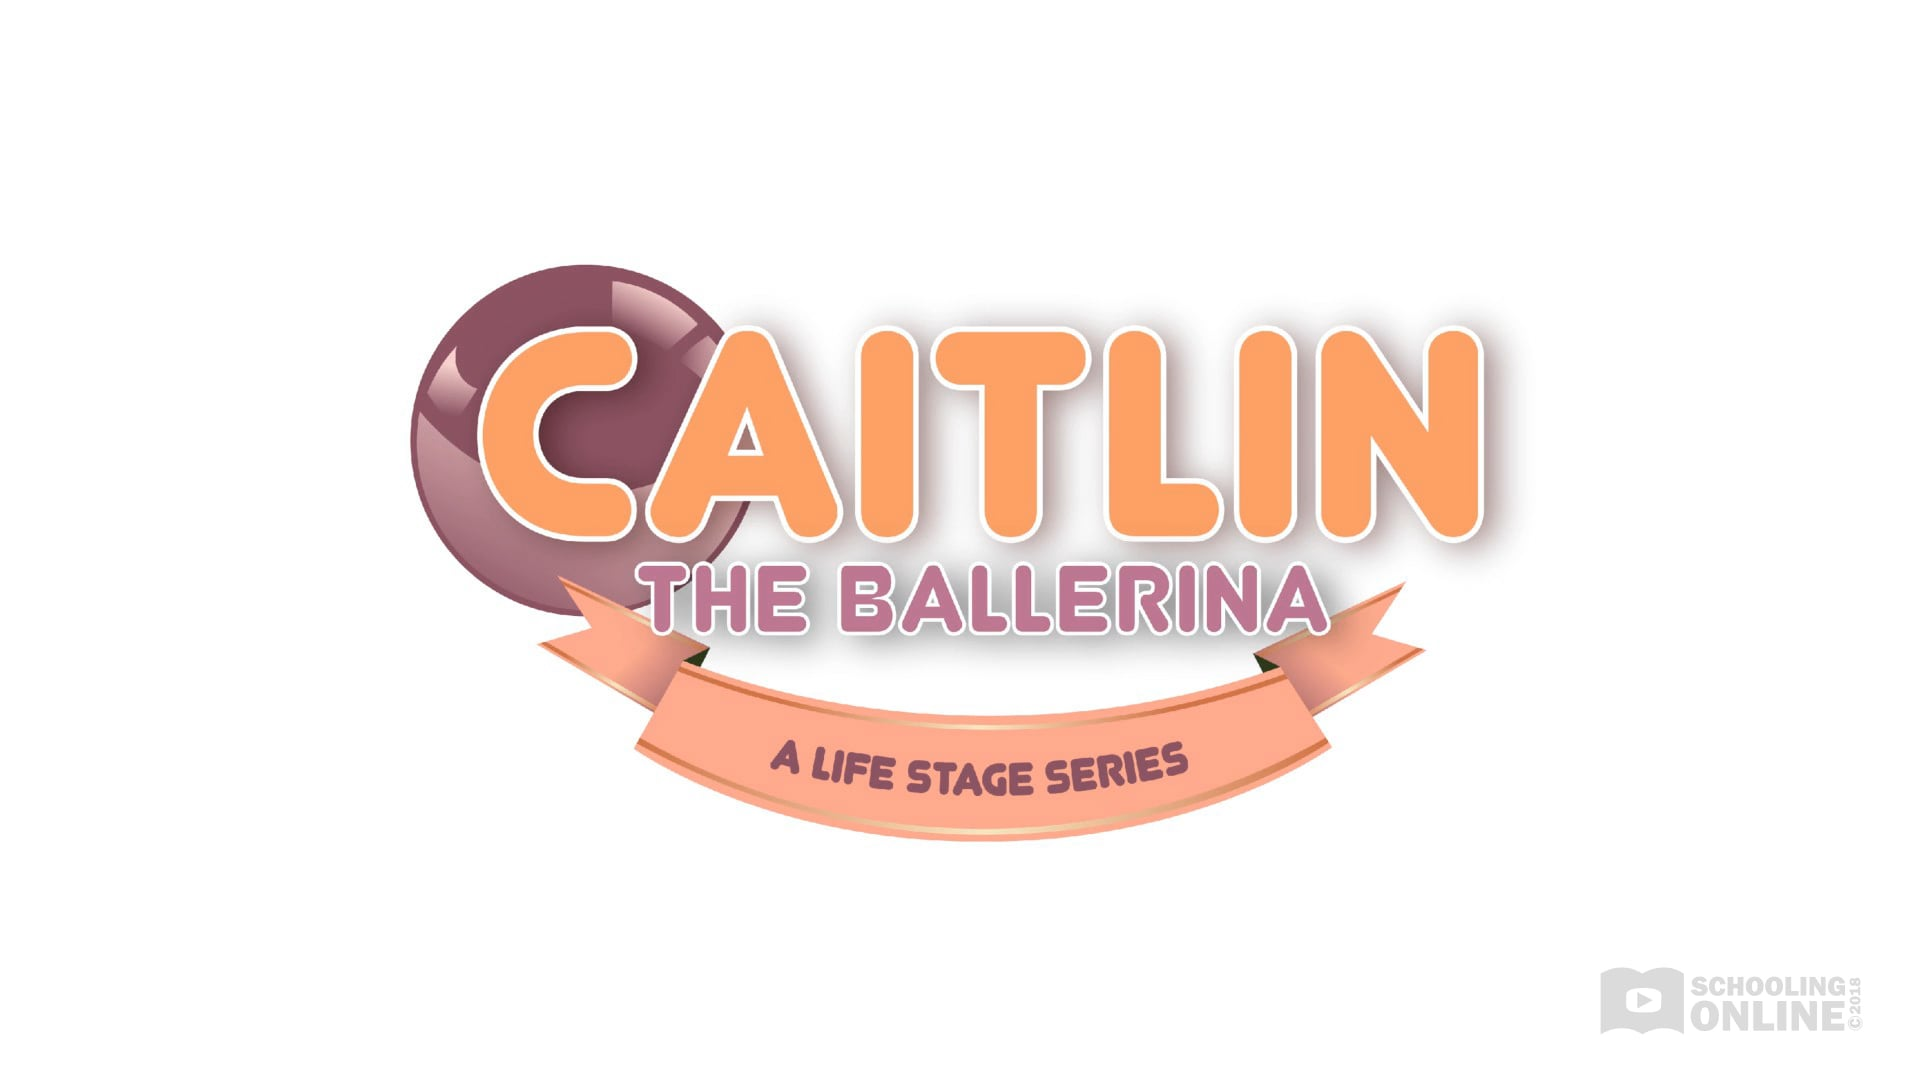 Caitlin The Ballerina - The Life Stage Series